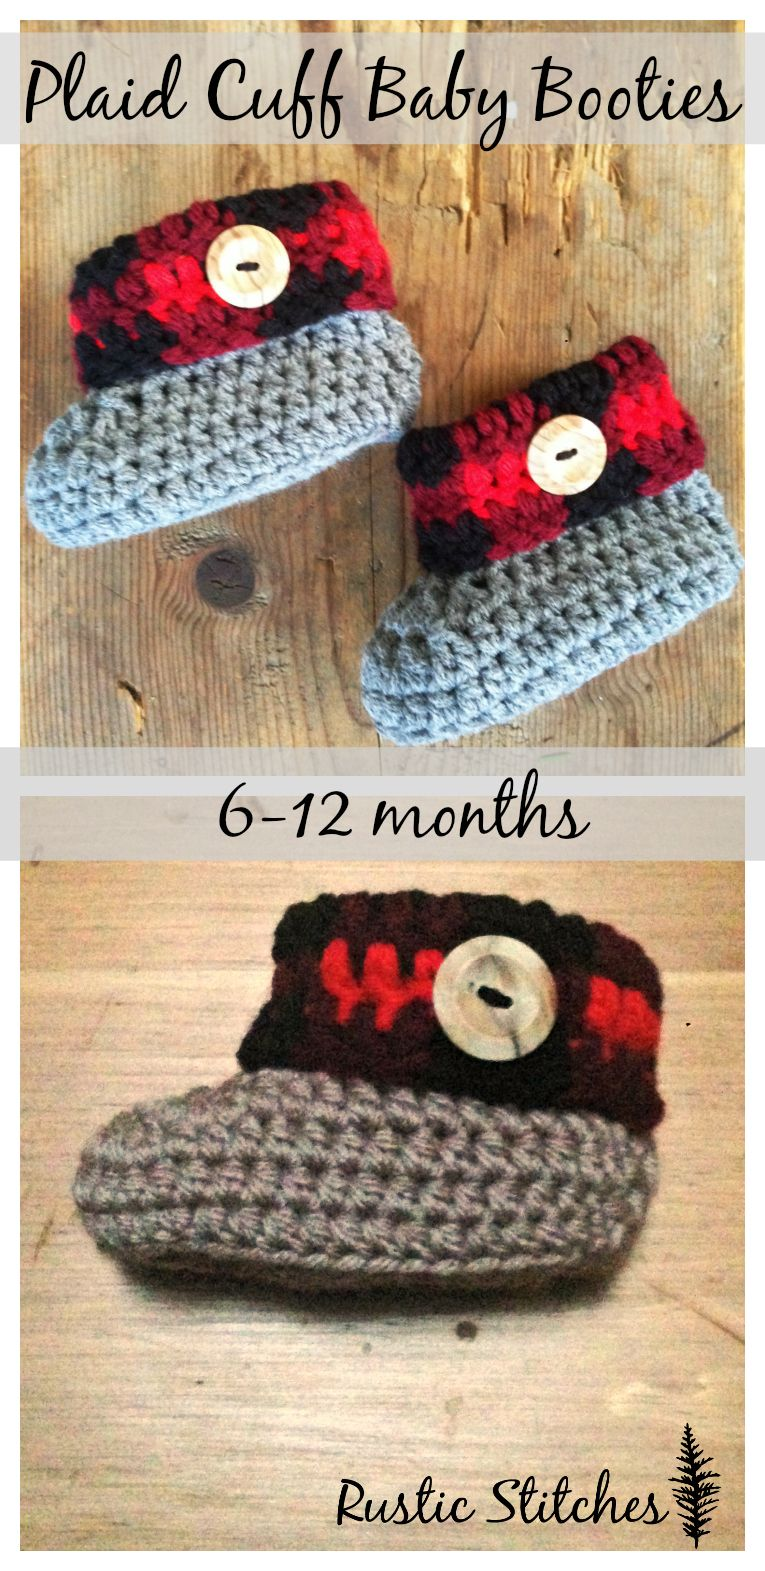 Plaid Cuff Baby Booties Free Patter For Sizes 6 9 And 9 12 Months